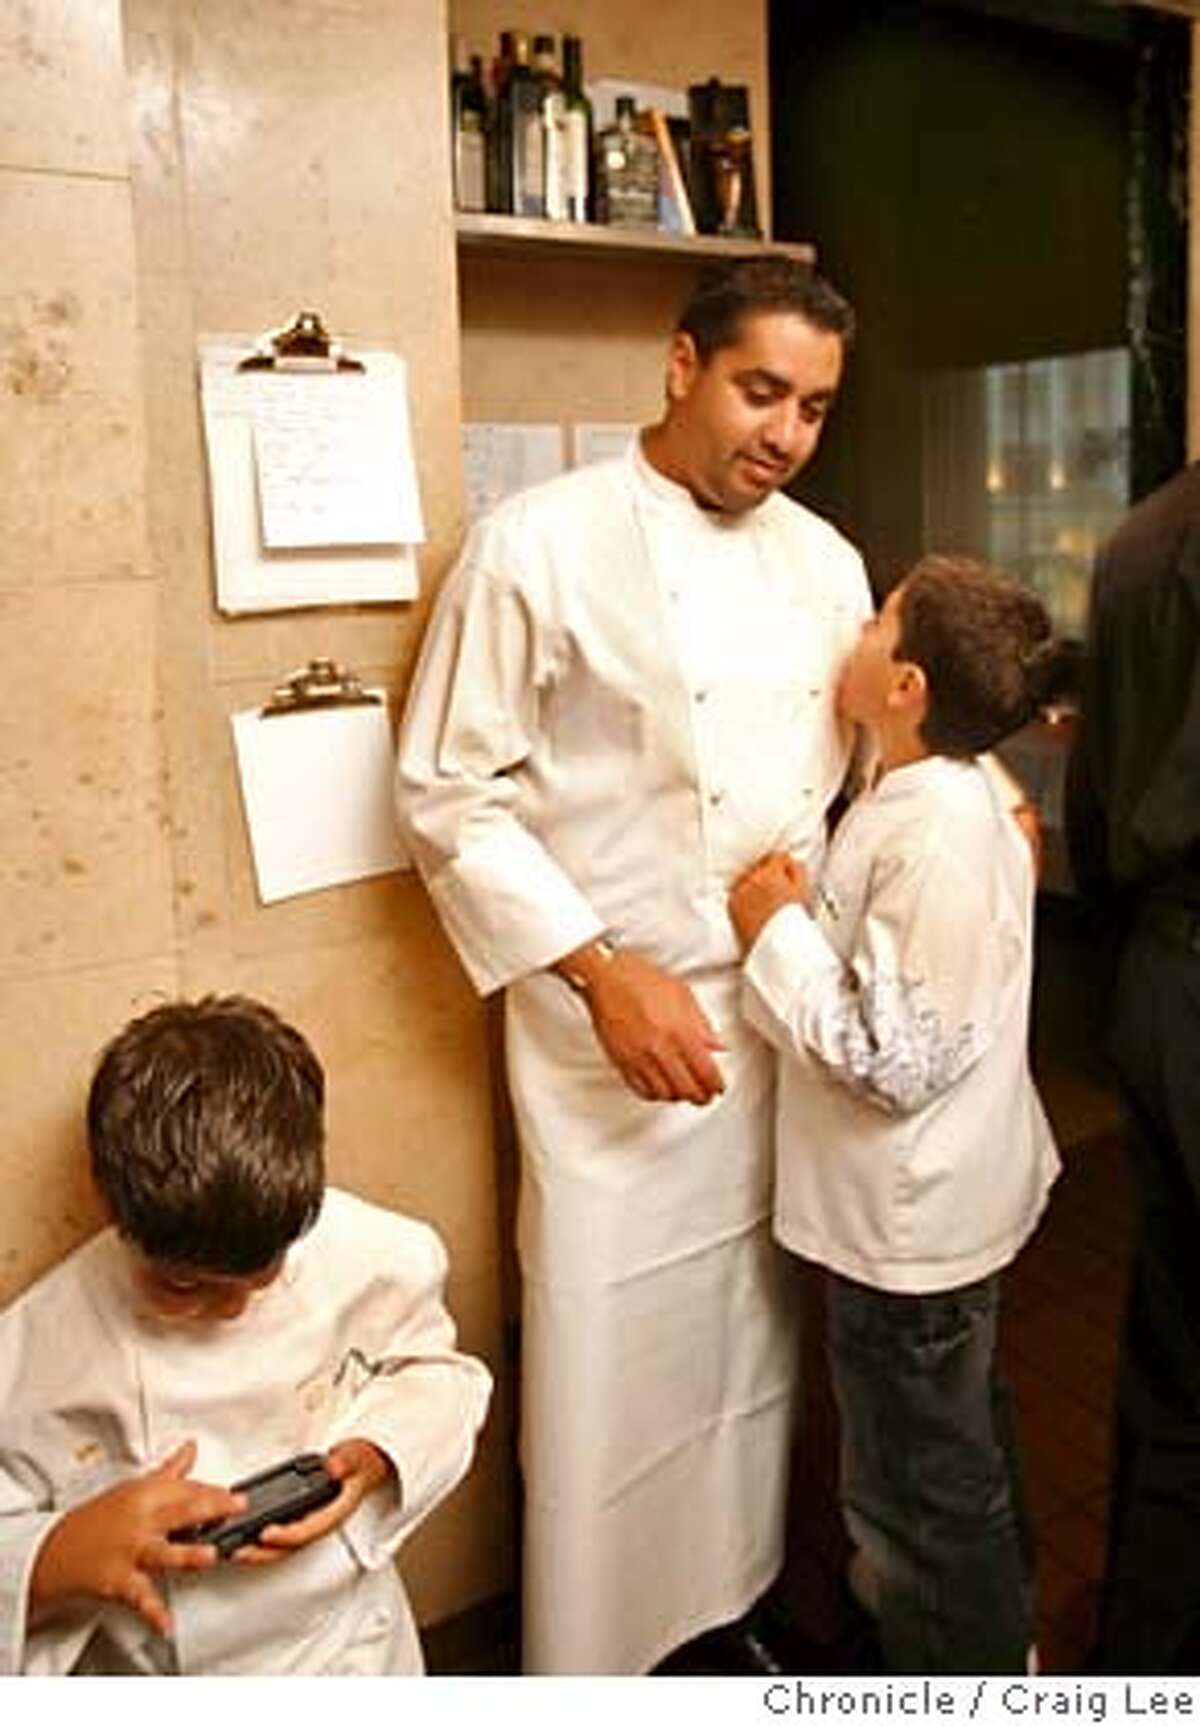 ###Live Caption:4-star chef Michael Mina, with his son's Sammy, 10, and Anthony (left), 6, playing a video game, back in the kitchen at his restaurant, Michael Mina restaurant, in the St. Francis Hotel, San Francisco, Calif., on April 9, 2008. Photo by Craig Lee / The San Francisco Chronicle###Caption History:4-star chef Michael Mina, with his son's Sammy, 10, and Anthony (left), 6, playing a video game, back in the kitchen at his restaurant, Michael Mina restaurant, in the St. Francis Hotel, San Francisco, Calif., on April 9, 2008. Photo by Craig Lee / The San Francisco Chronicle###Notes:Michael Mina restaurant 415-397-9222 Craig Lee 415-218-8597 clee@sfchronicle.com###Special Instructions:MANDATORY CREDIT FOR PHOTOG AND SF CHRONICLE/NO SALES-MAGS OUT